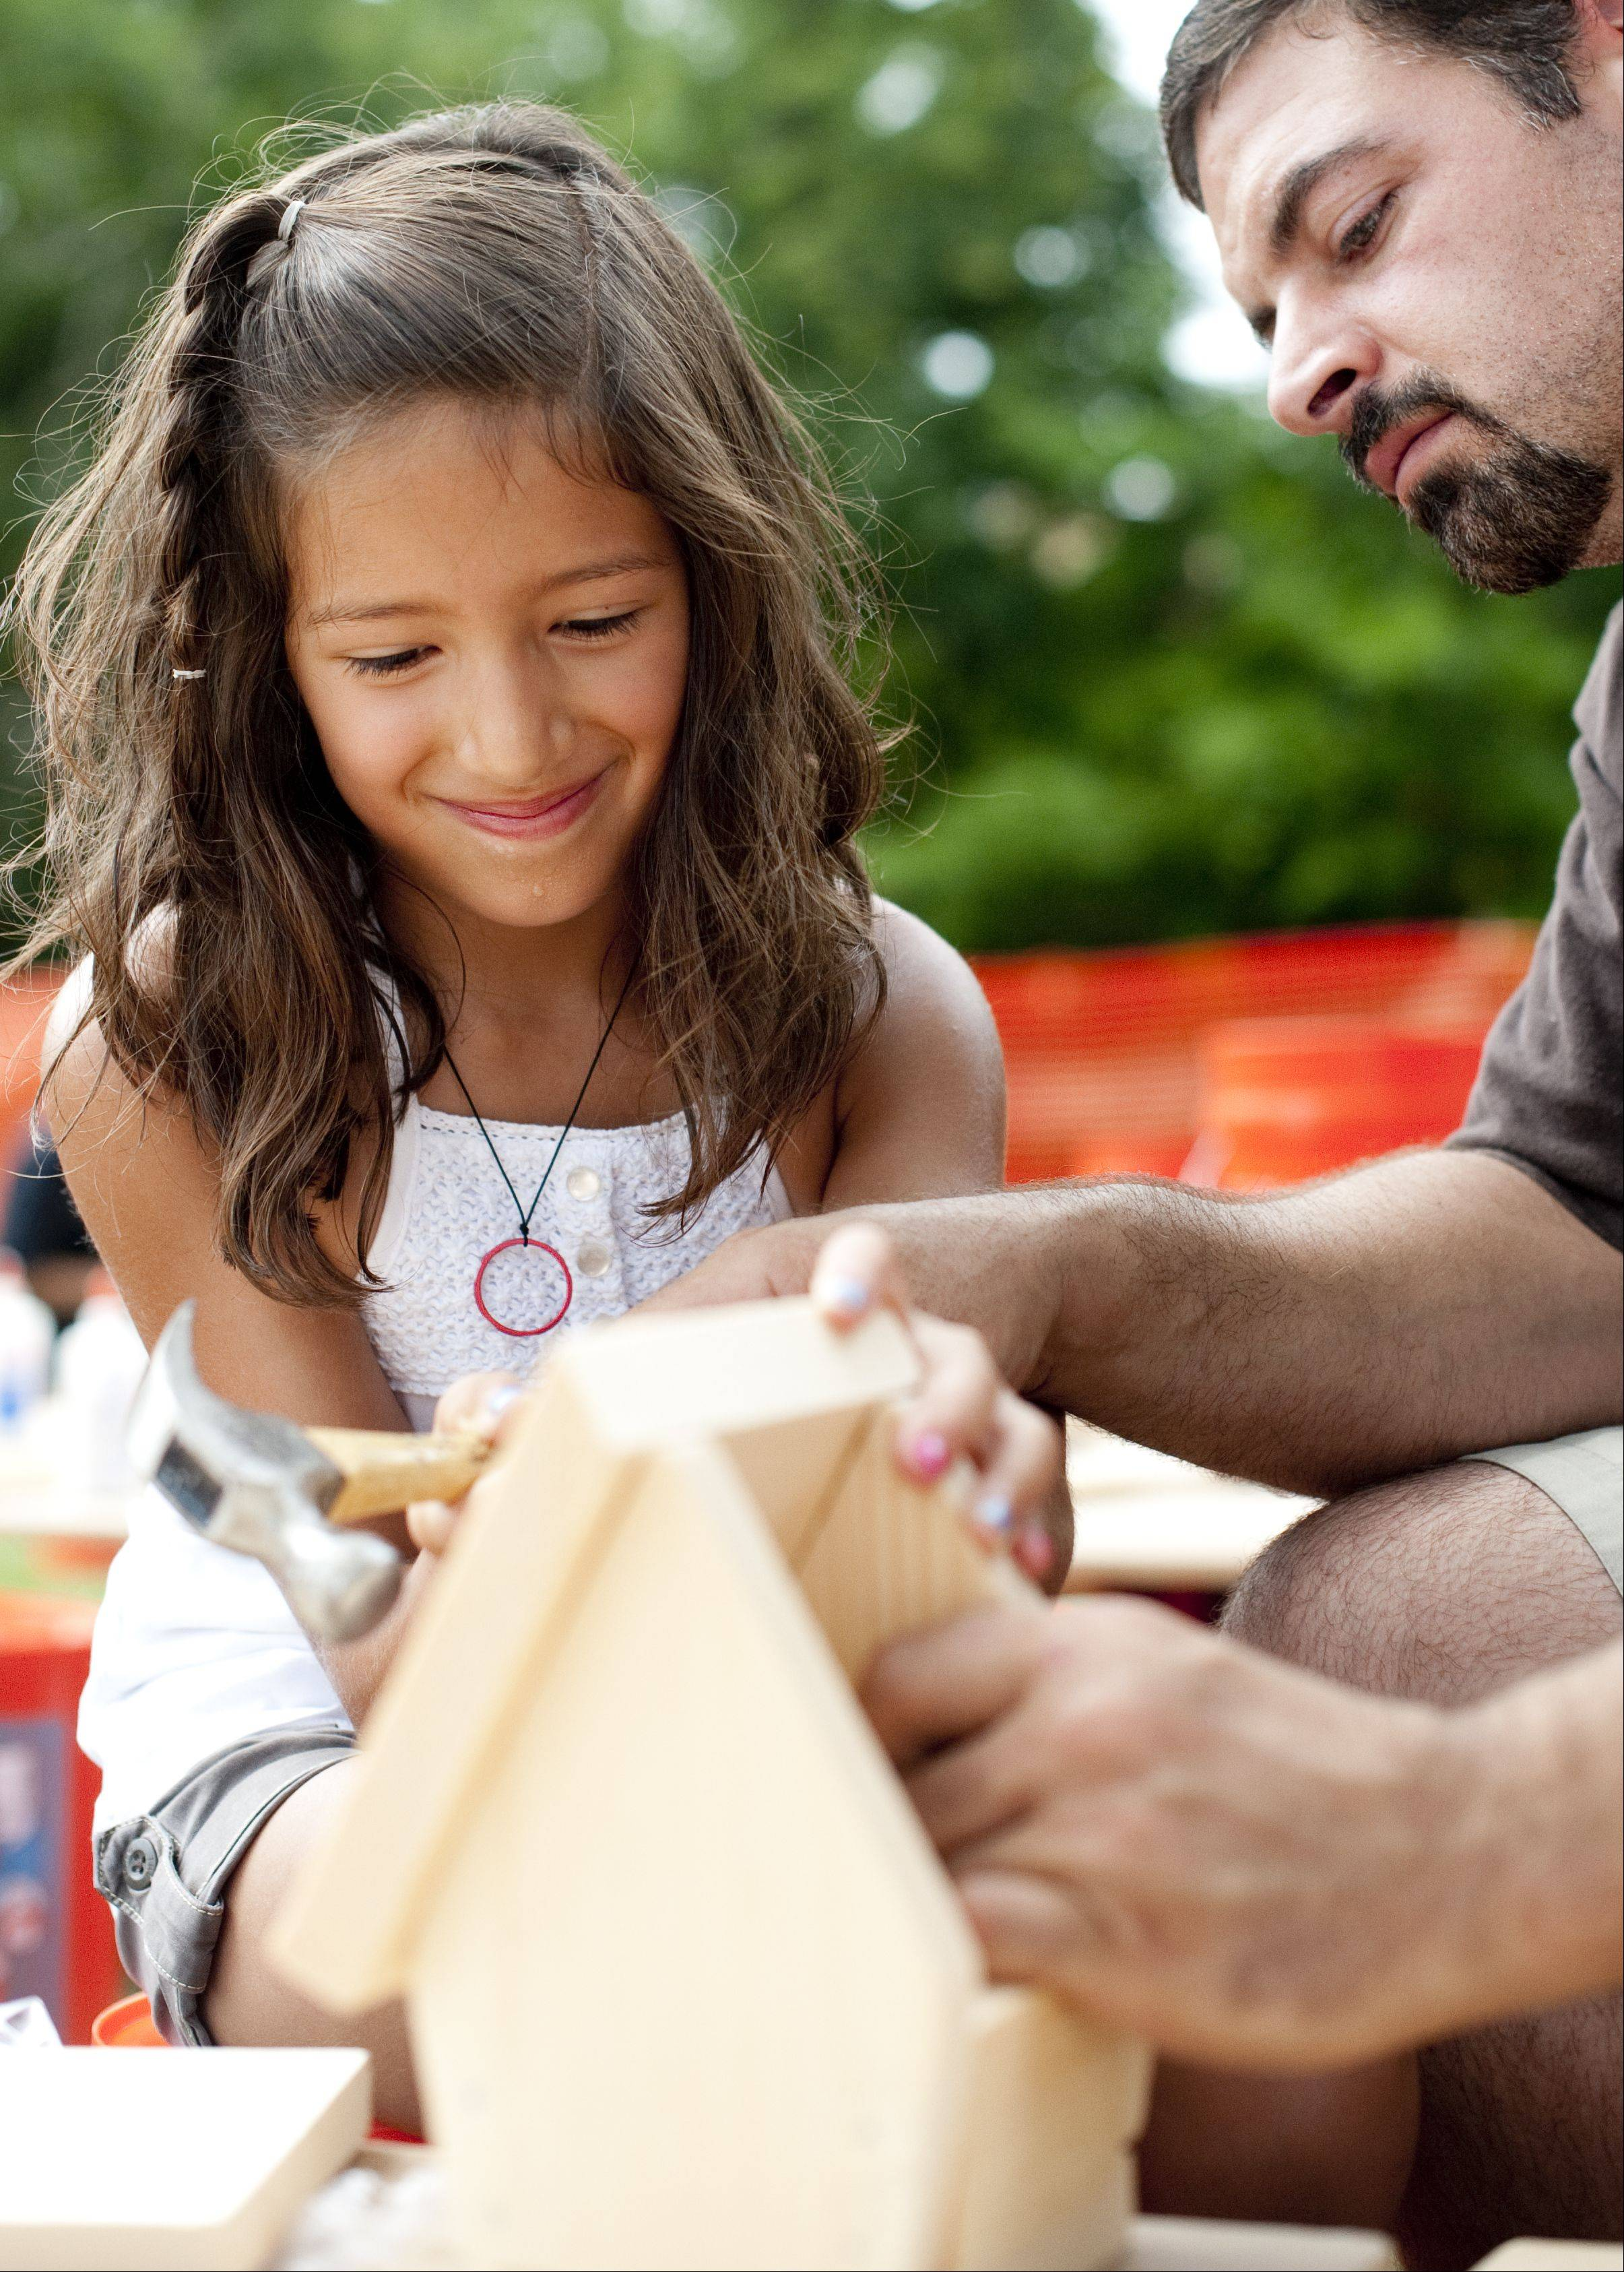 Alexis Celentano, 7, of Cary gets help from her father, David, while putting the roof on a birdhouse in the crafts area of the 52nd Algonquin Founders Days Sunday in Algonquin's Towne Park.